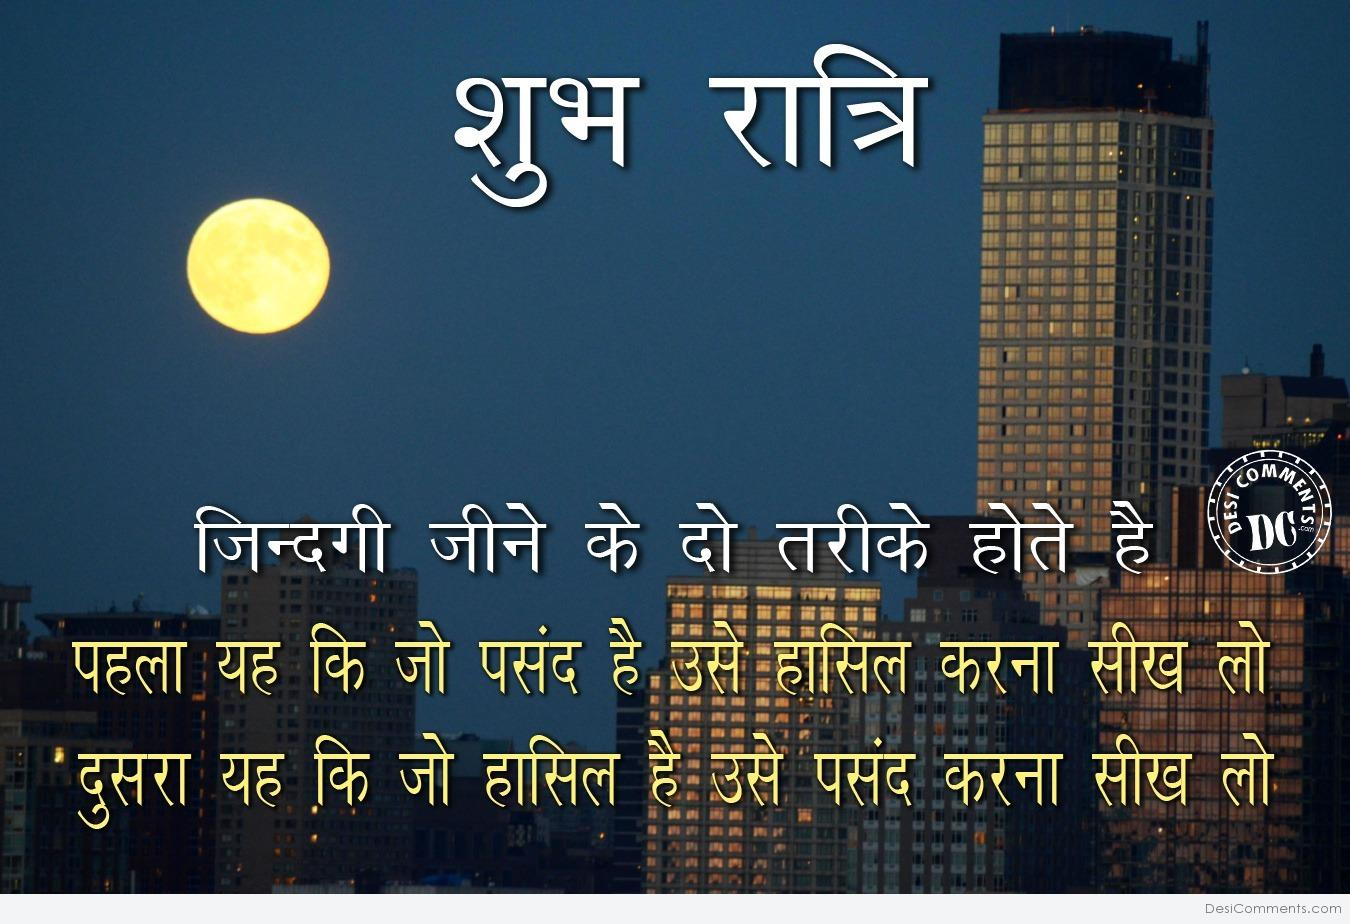 Shubh Ratri - DesiComments.com